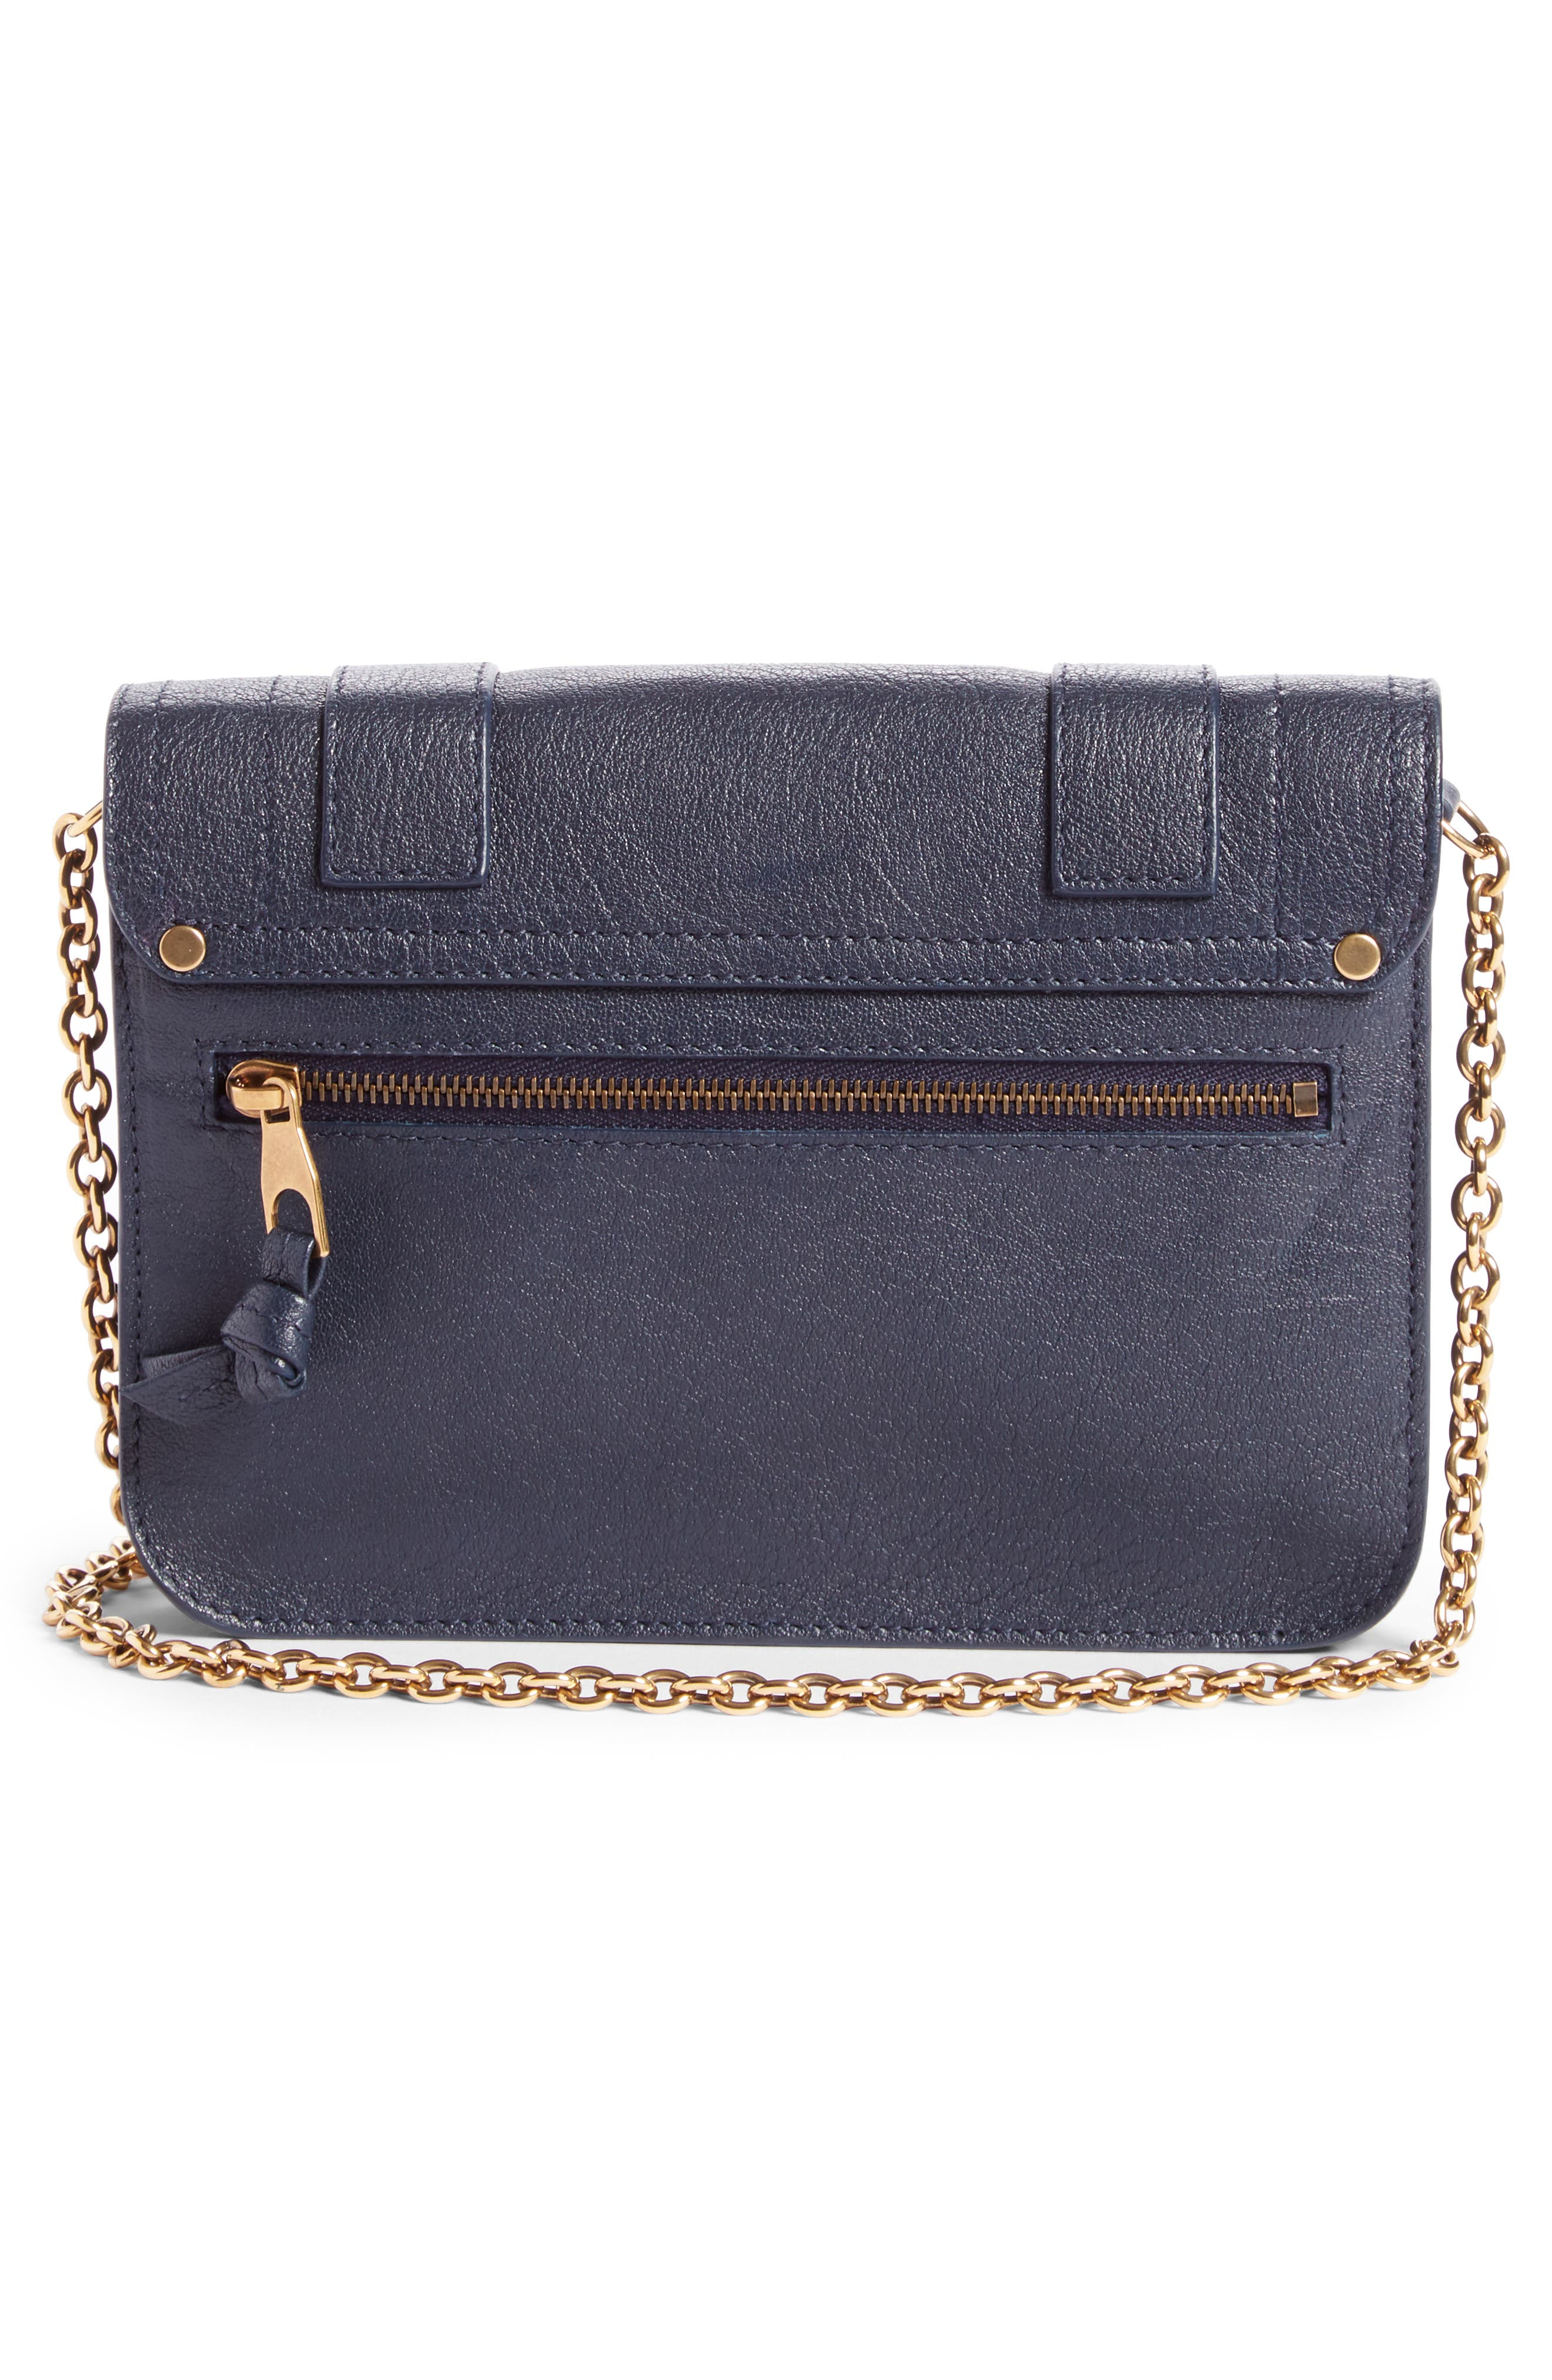 PS1 Lambskin Leather Chain Wallet,                             Alternate thumbnail 3, color,                             Midnight